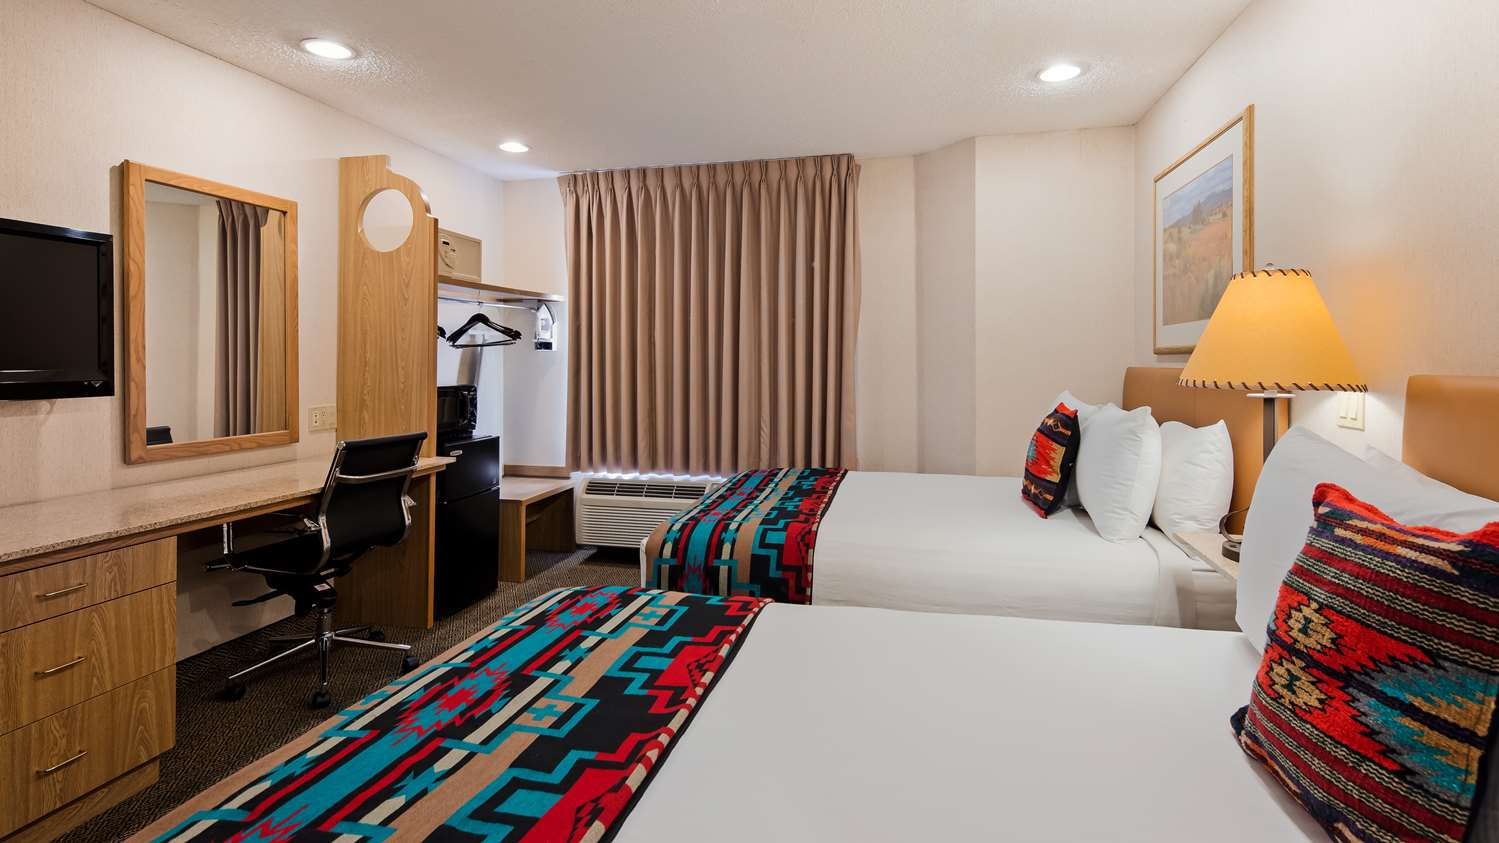 Room - SureStay Collection by Best Western Inn at Santa Fe